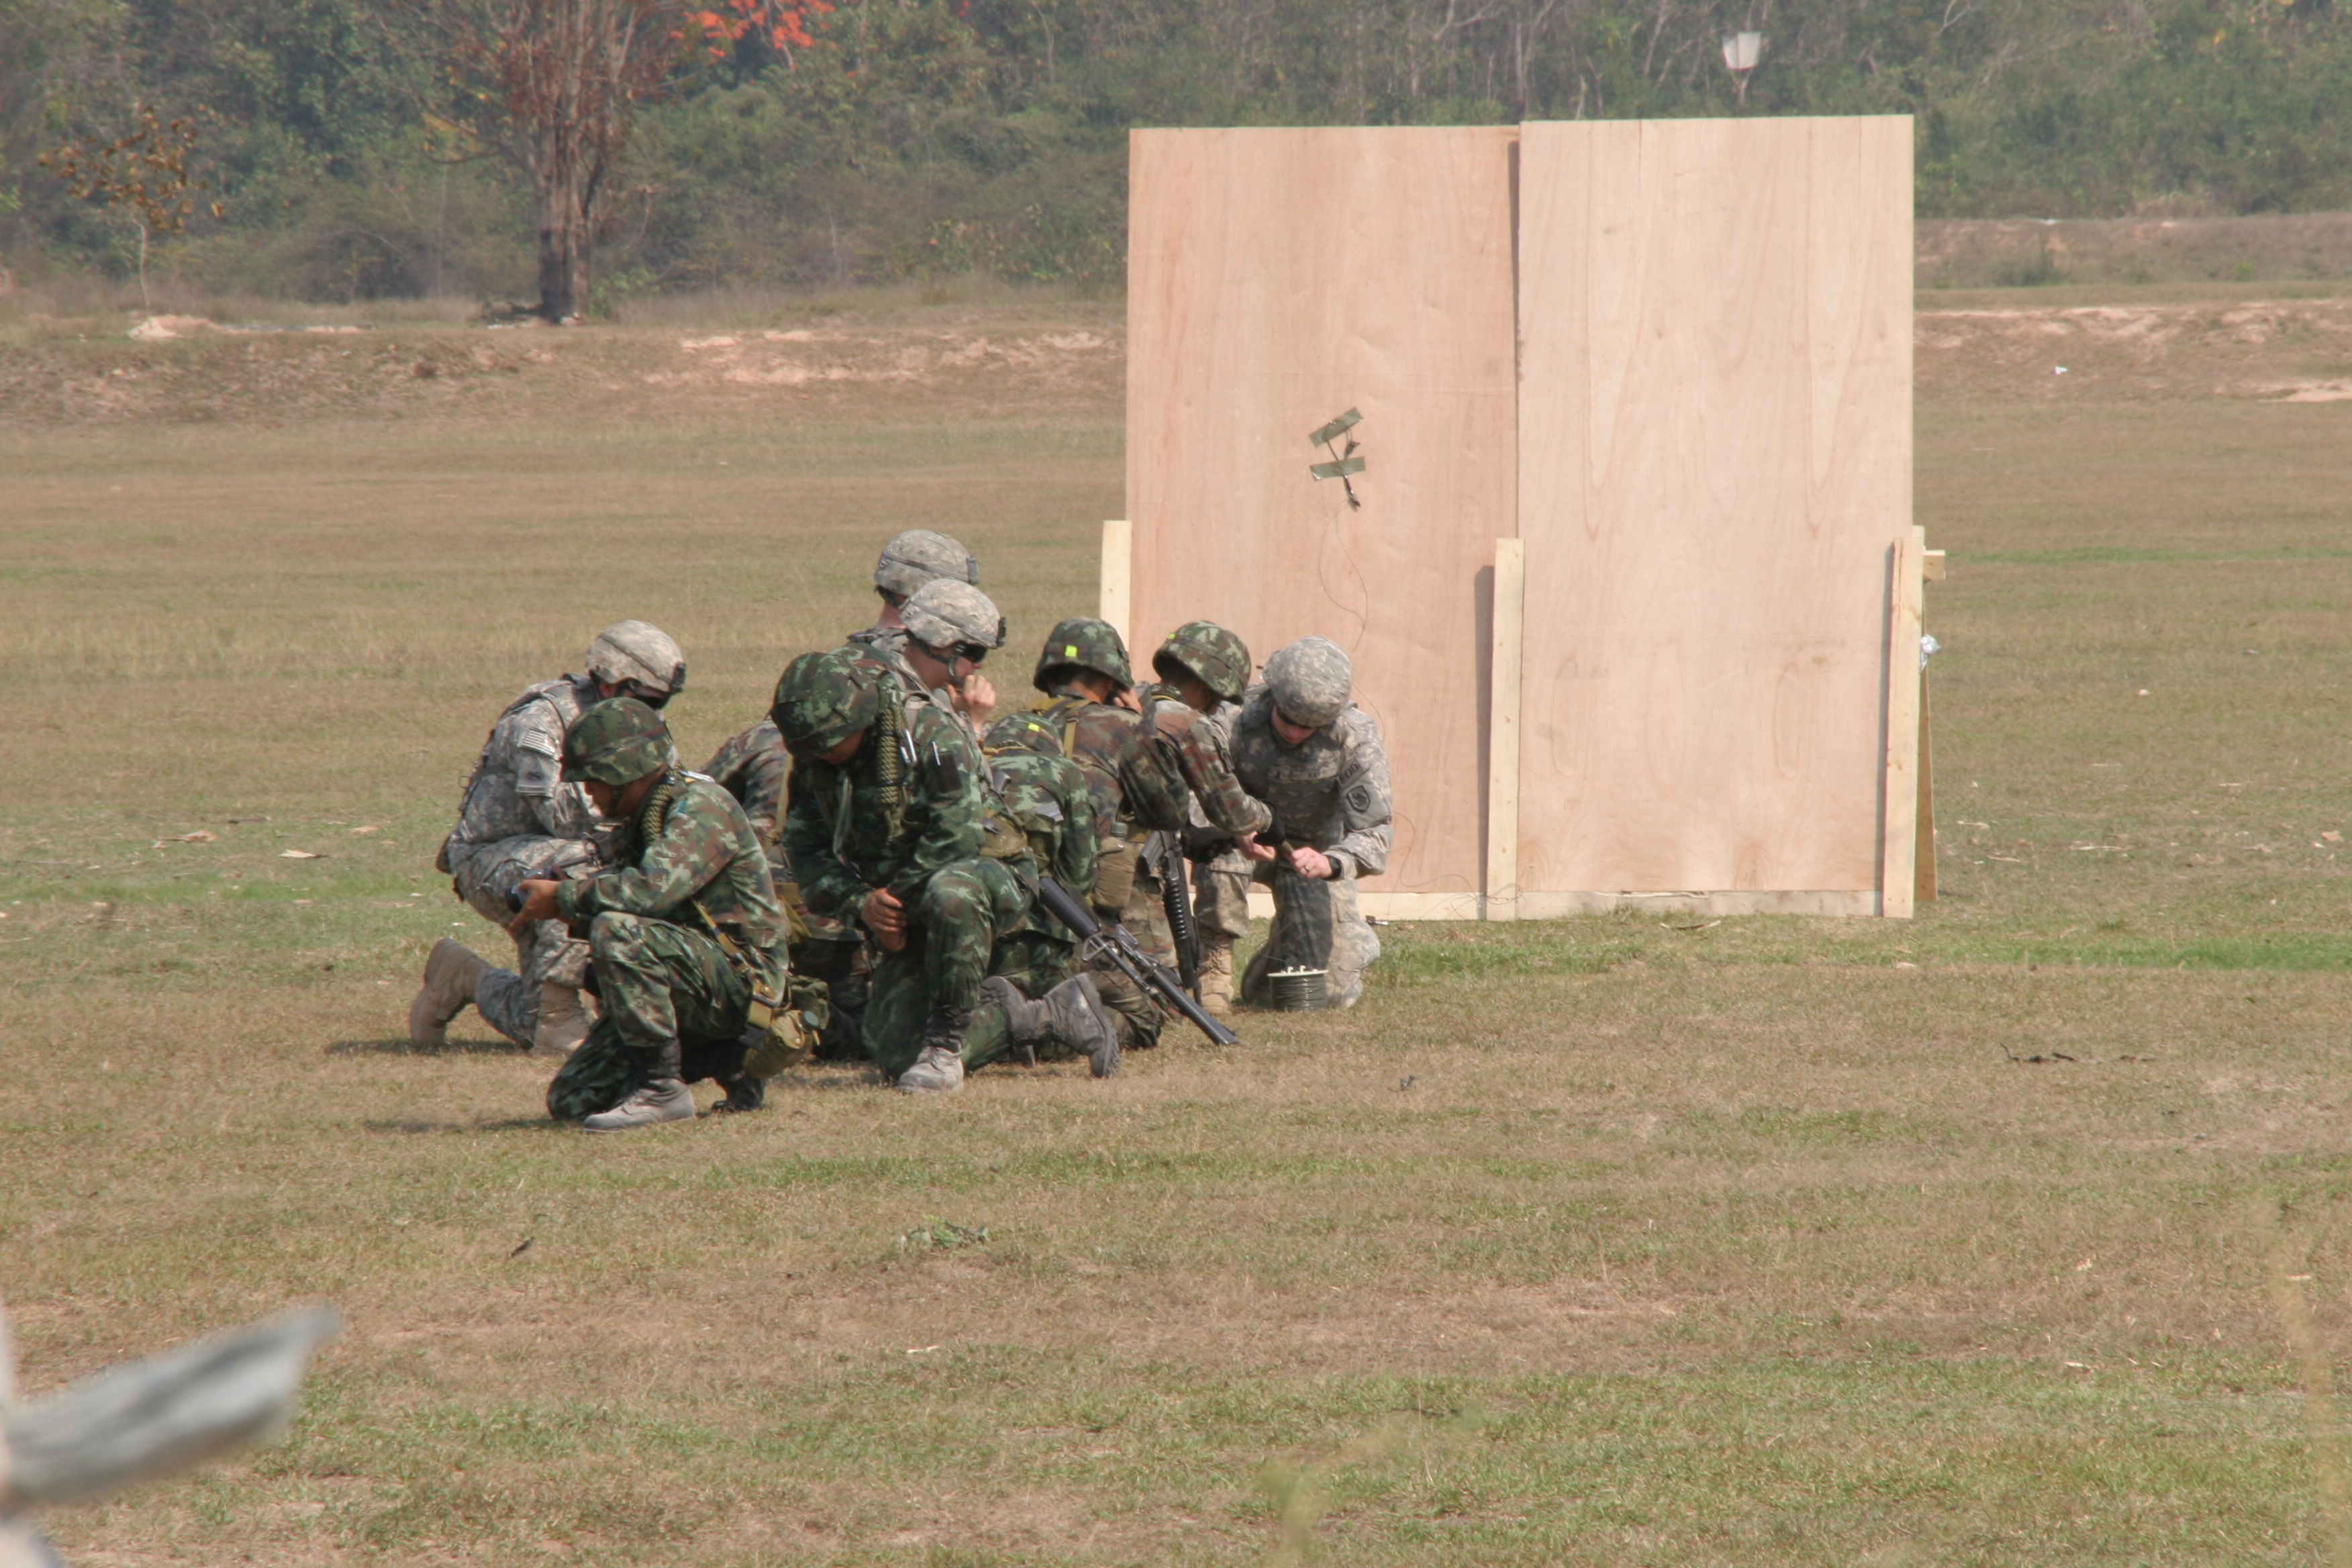 FileRoyal Thai US soldiers conduct door-breaching training during Exercise Cobra Gold & File:Royal Thai US soldiers conduct door-breaching training ...